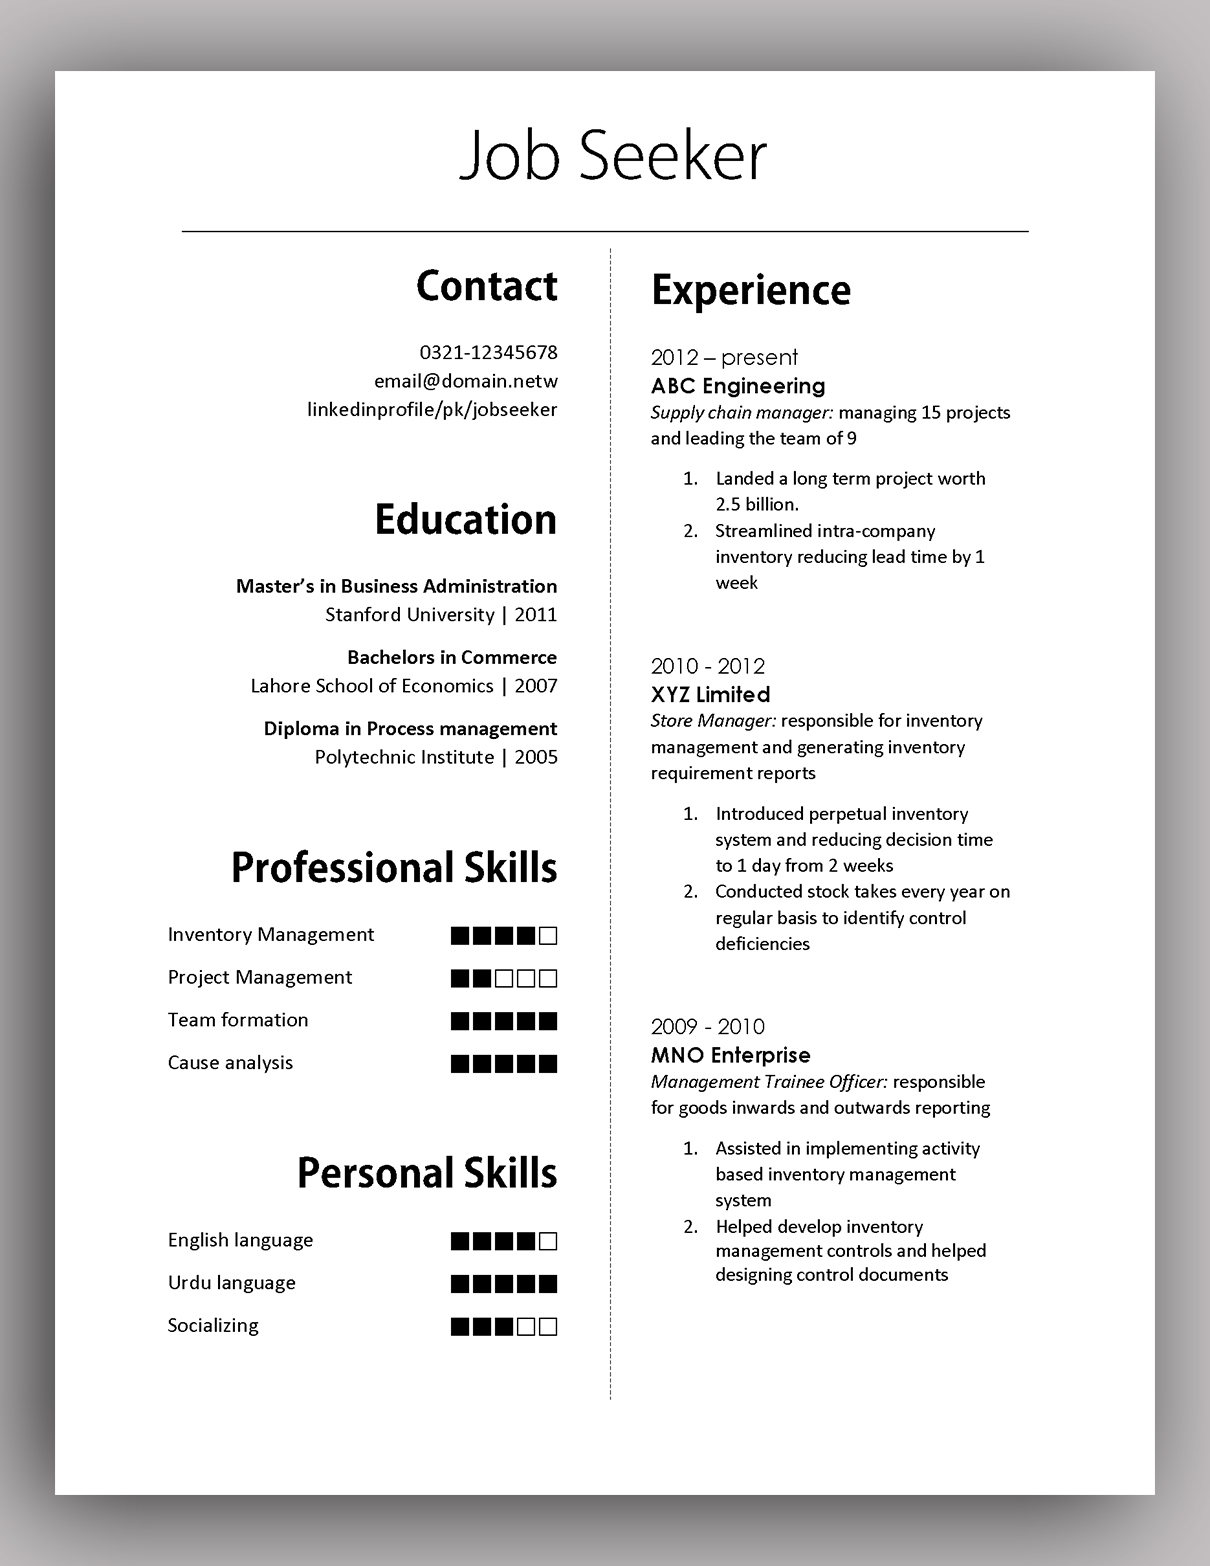 Cv Template South Africa Resumes Simple Yet Elegant Cv Template To Get The Job Done Free